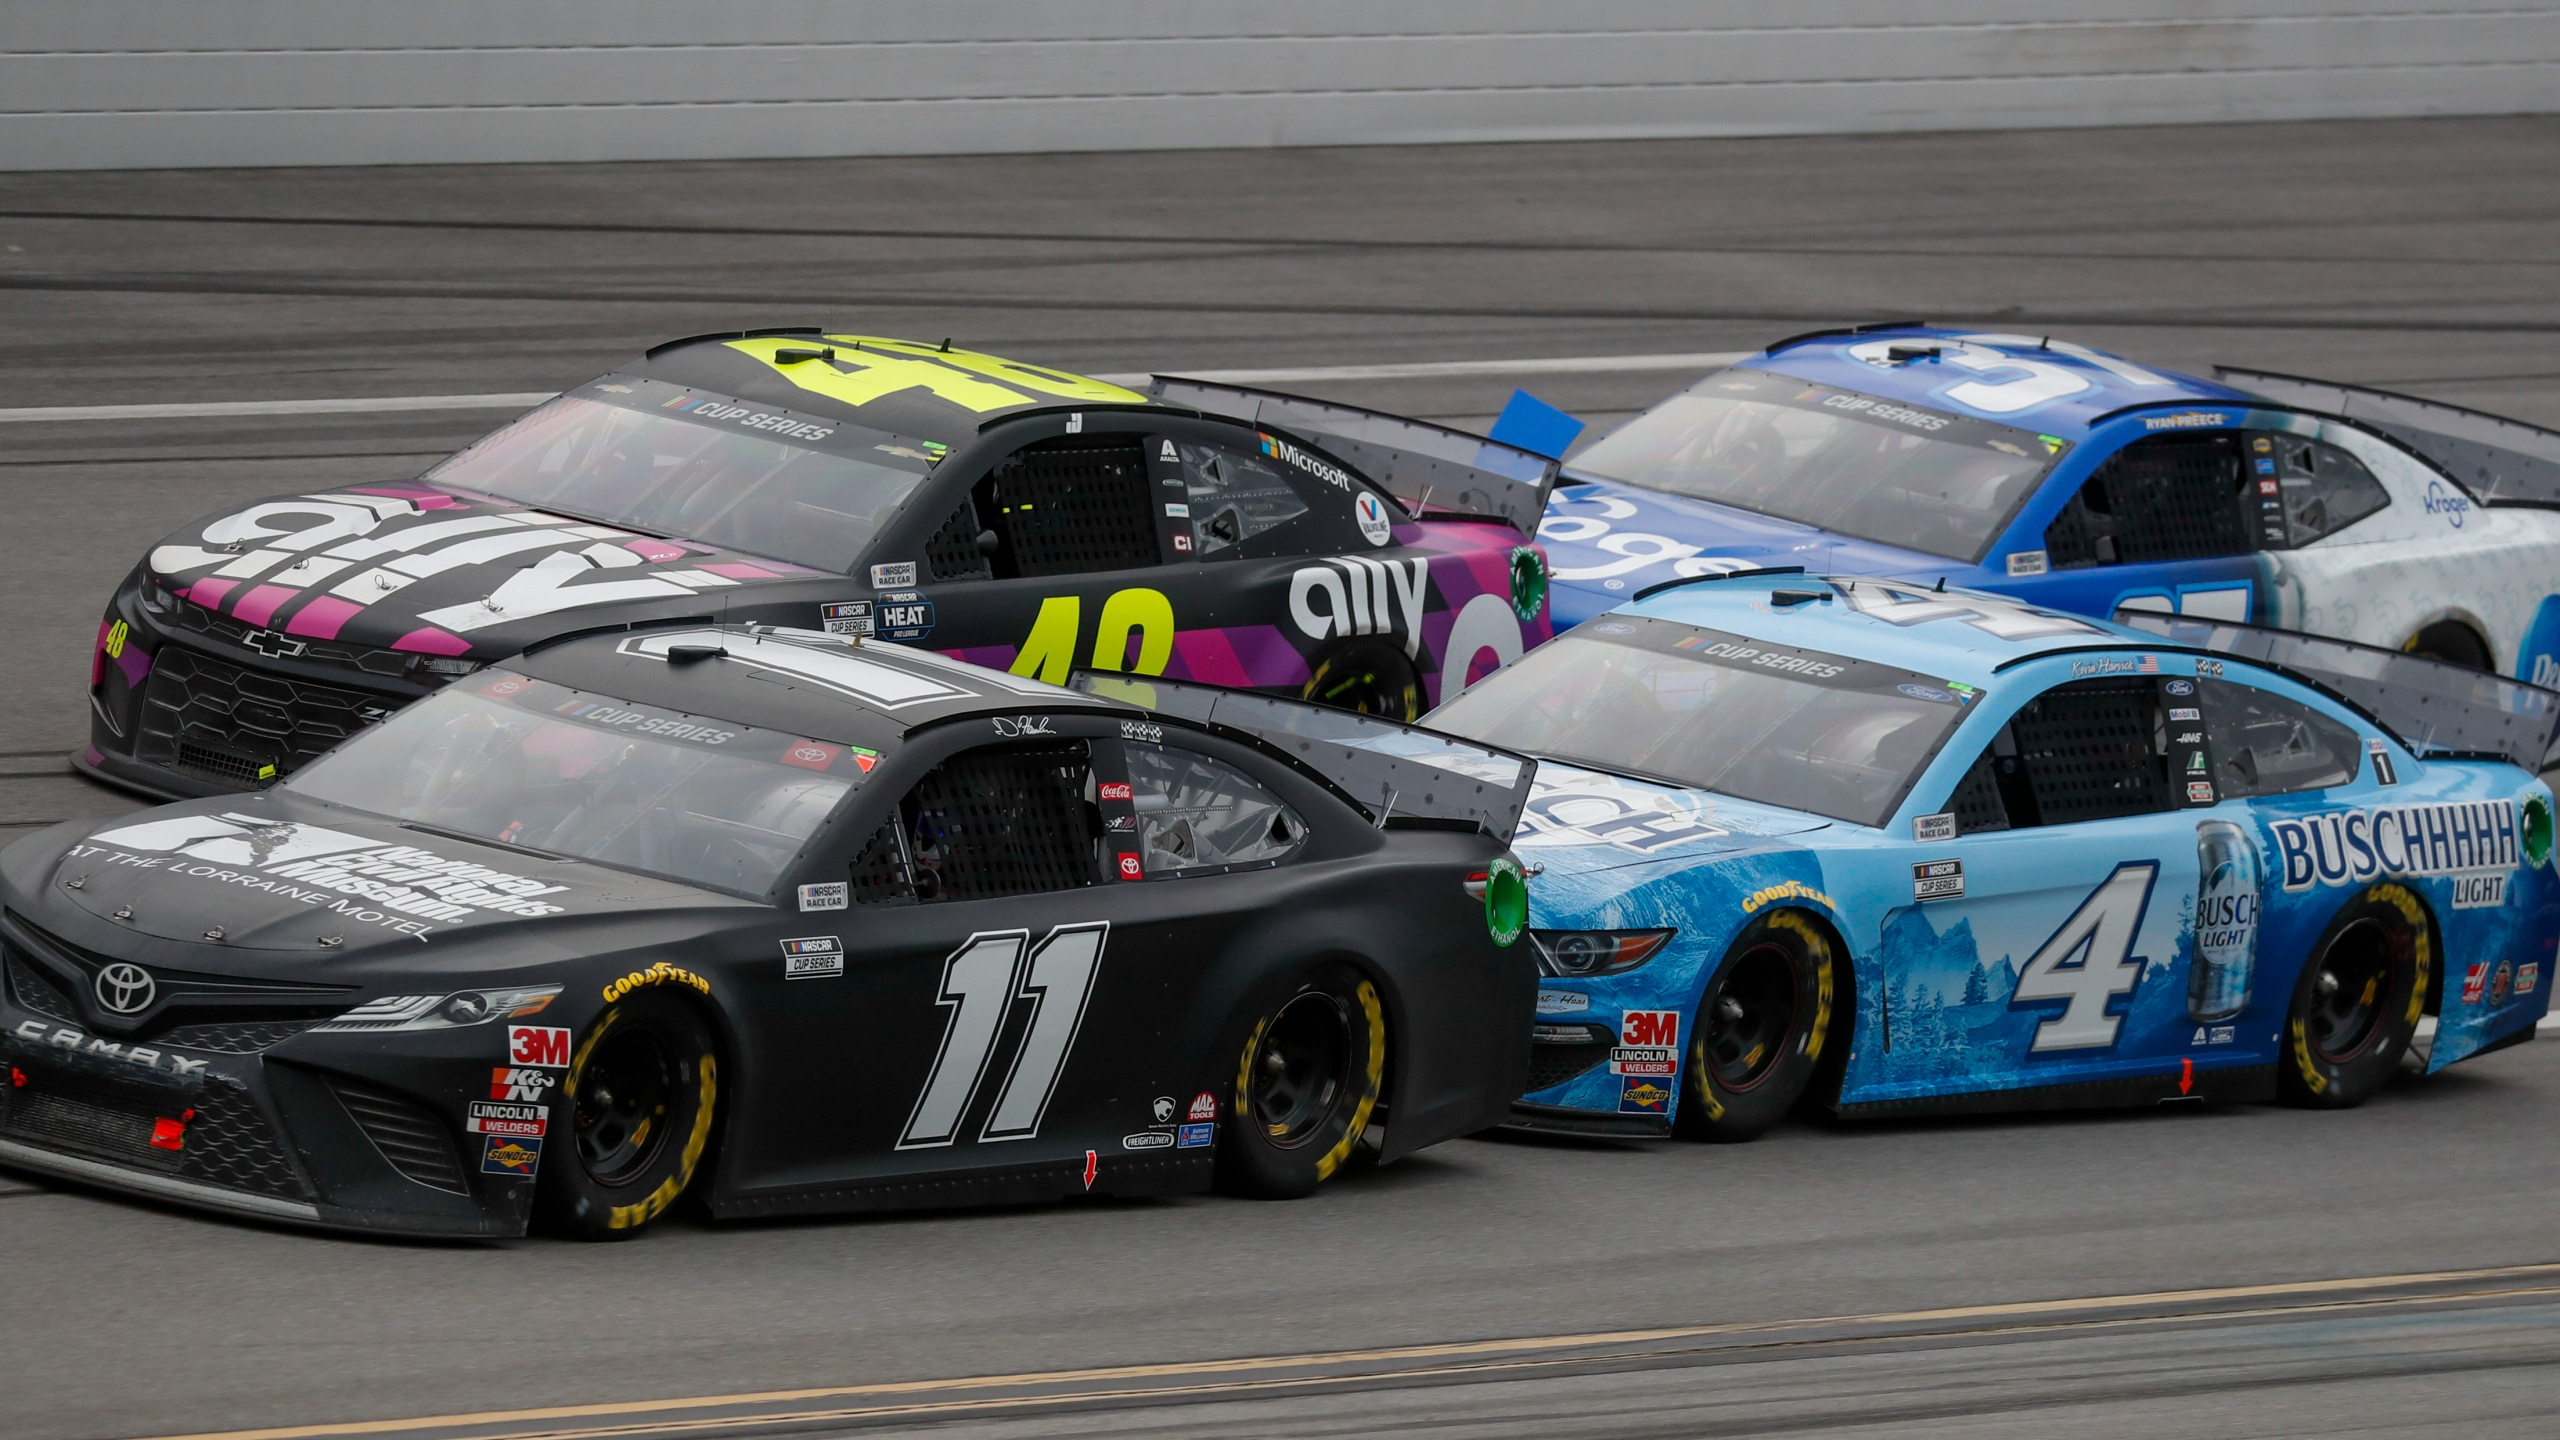 Denny Hamlin, Jimmie Johnson, Kevin Harvick